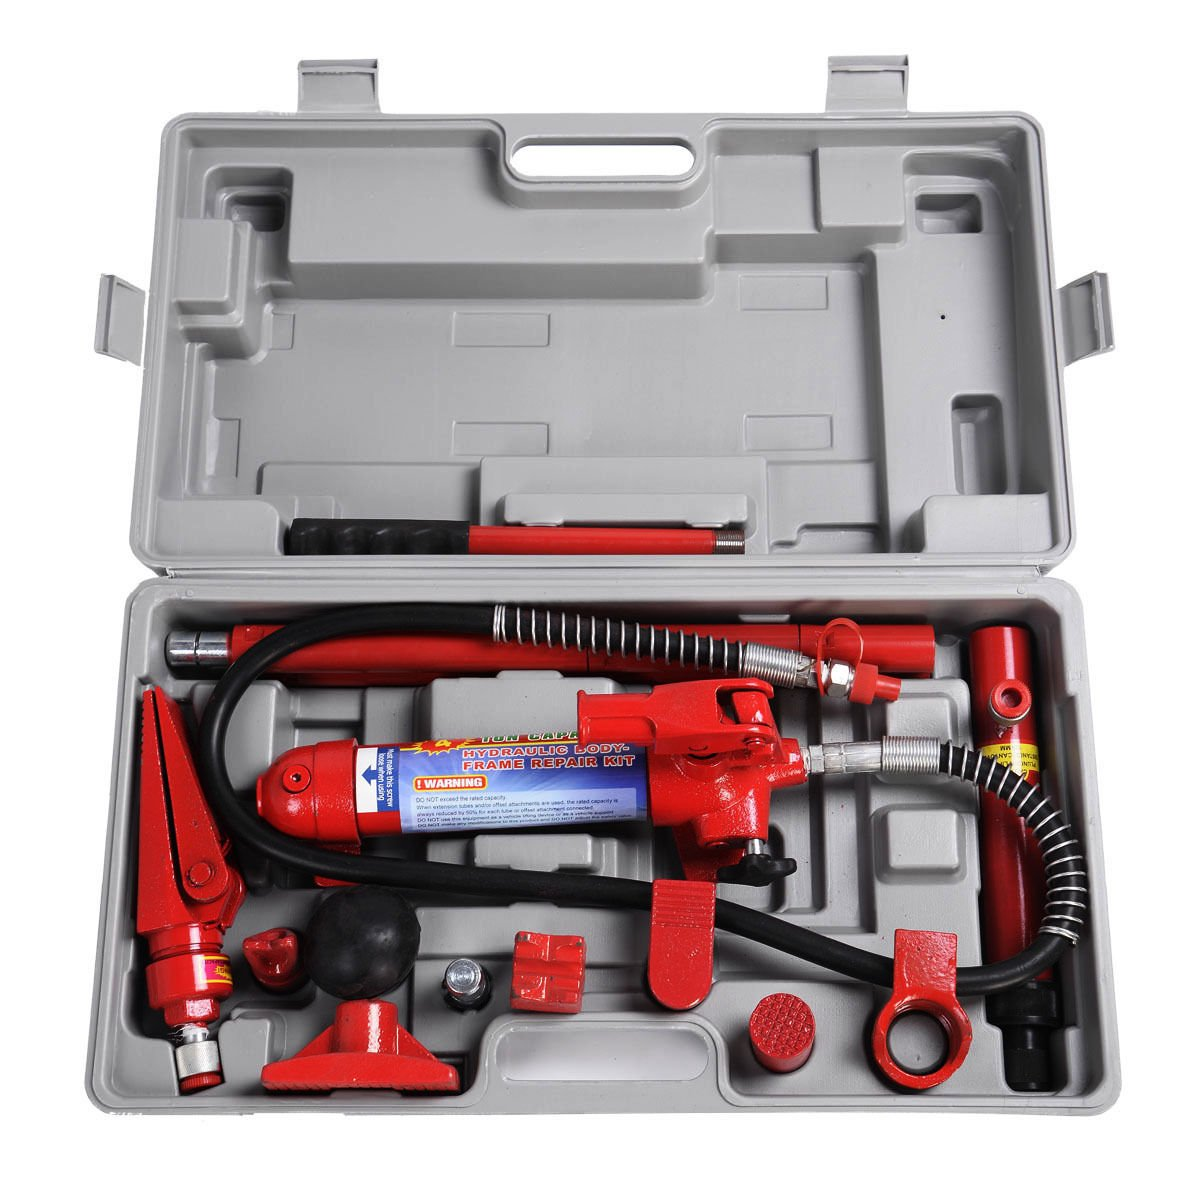 New 4 Ton Porta Power Hydraulic Jack Body Frame Repair Kit Auto Shop Tool Heavy Set by Other Shop Equipment